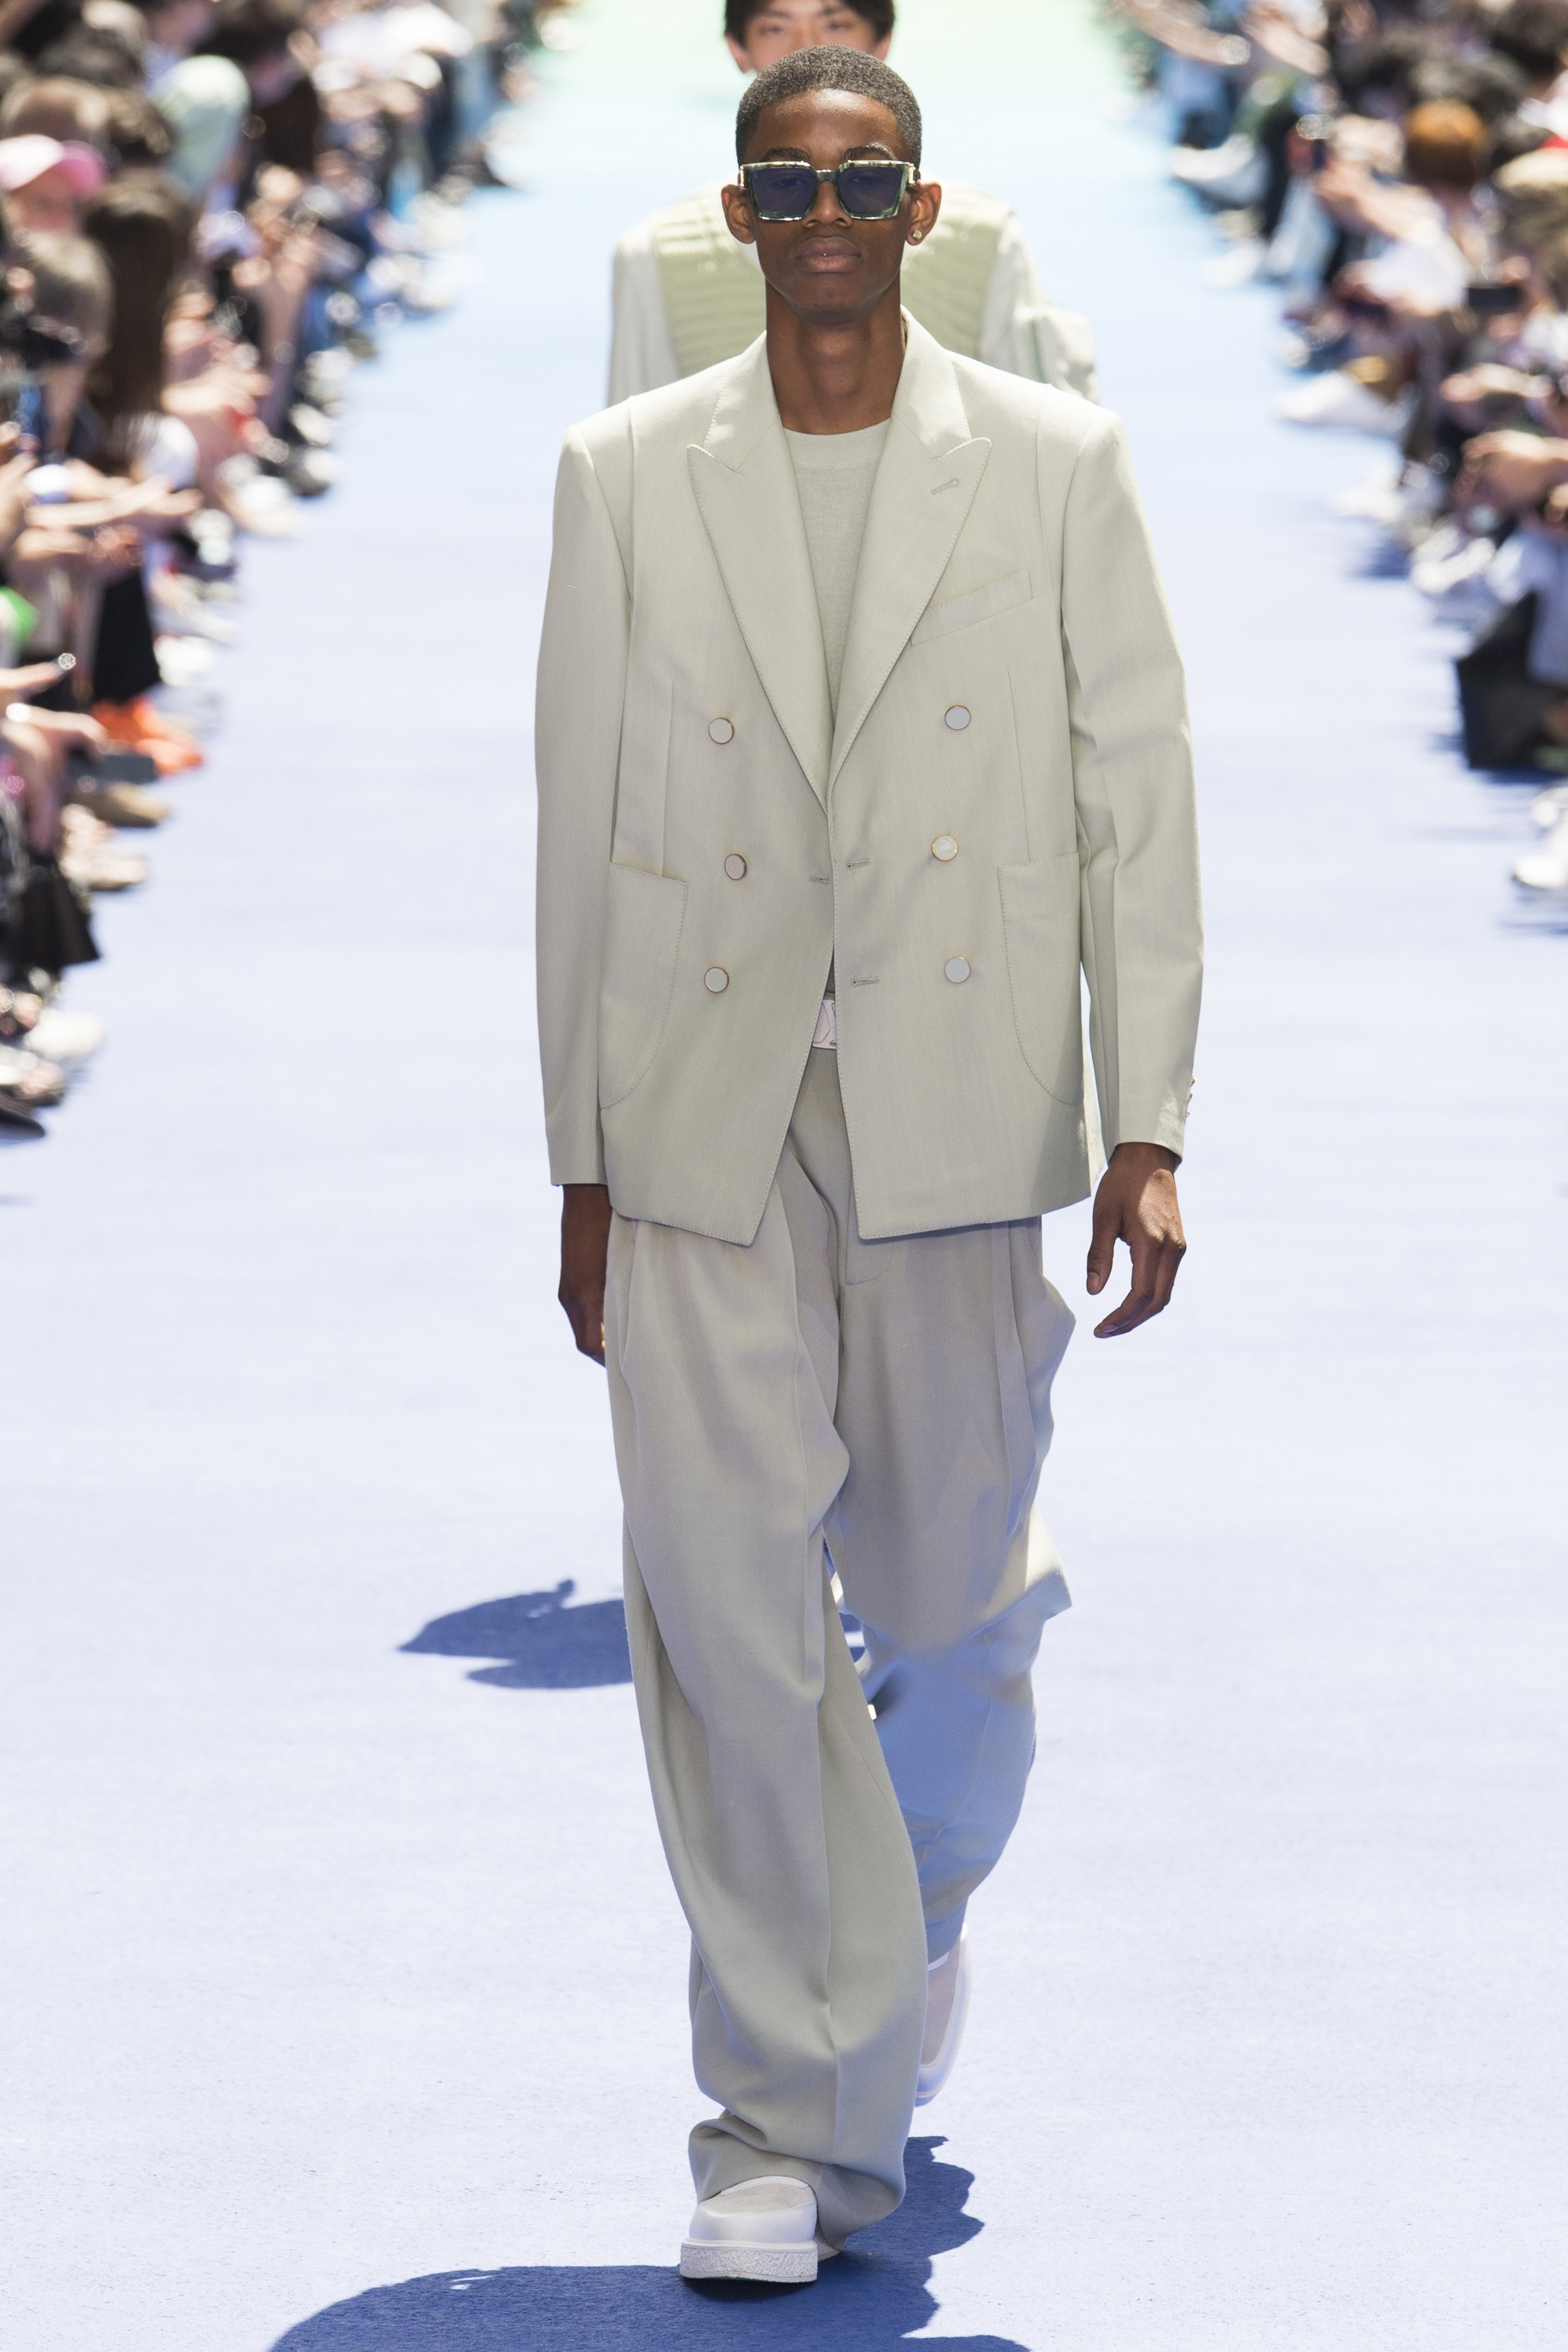 Louis Vuitton Spring 2019 menswear